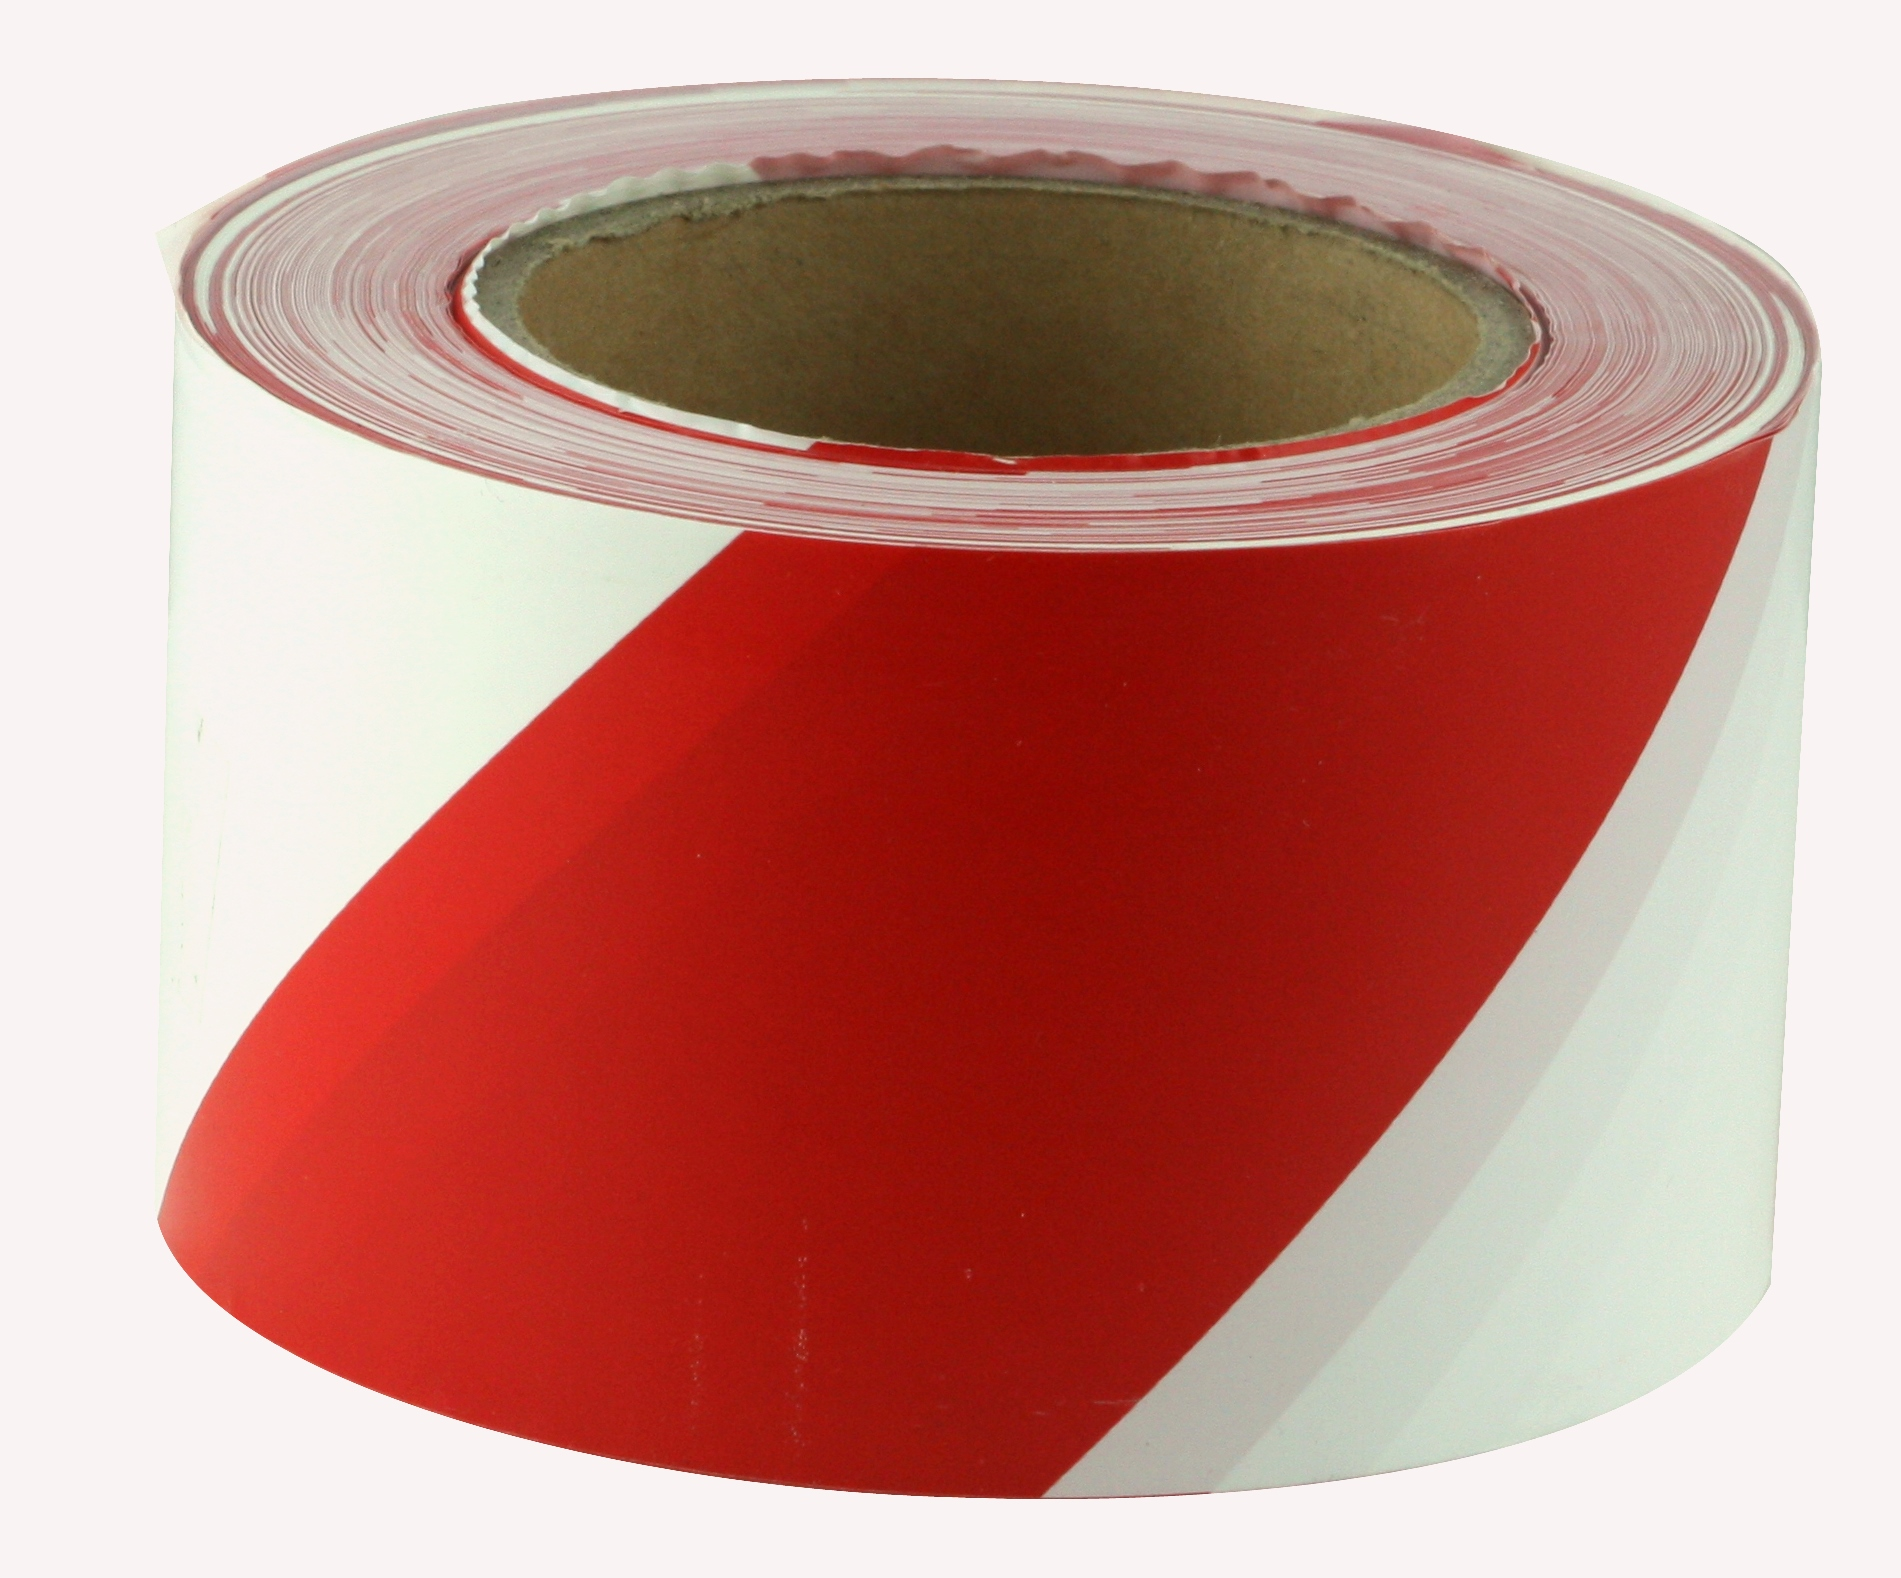 WorkShield - Red/White Barrier Tape